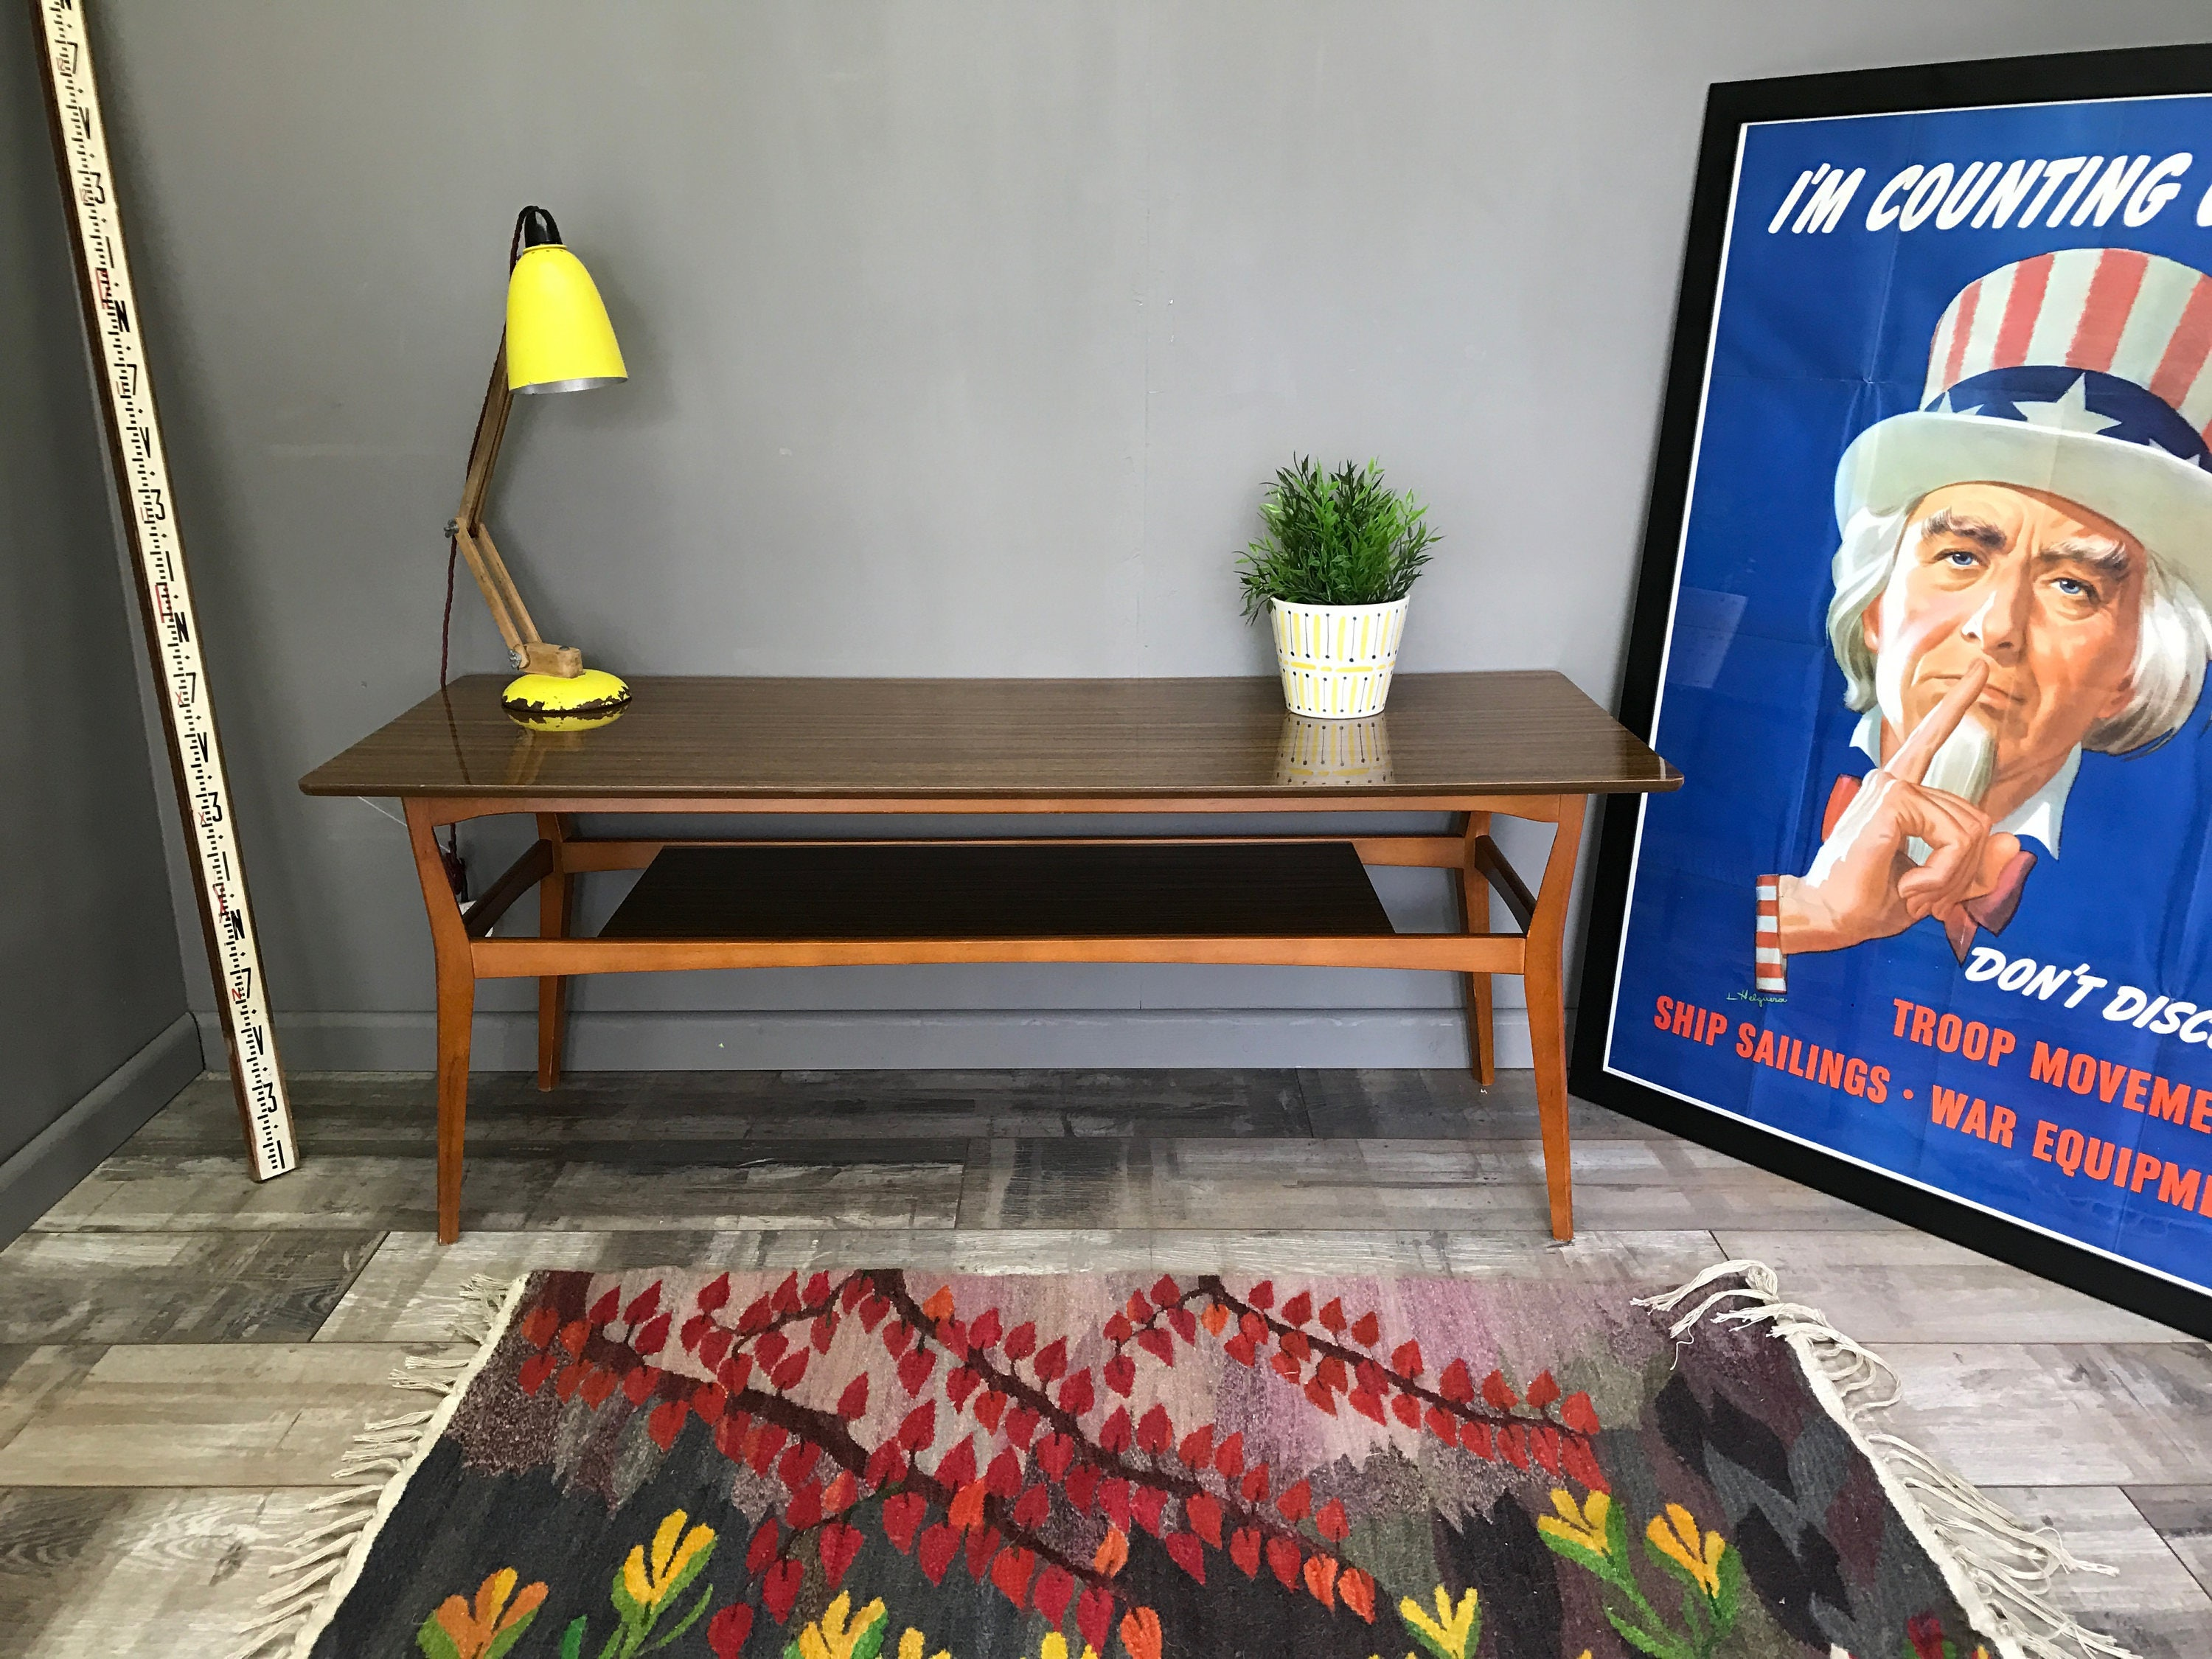 Cool Retro Coffee Table With Magazie Rack Vintage Melamine Side TV Unit Stand